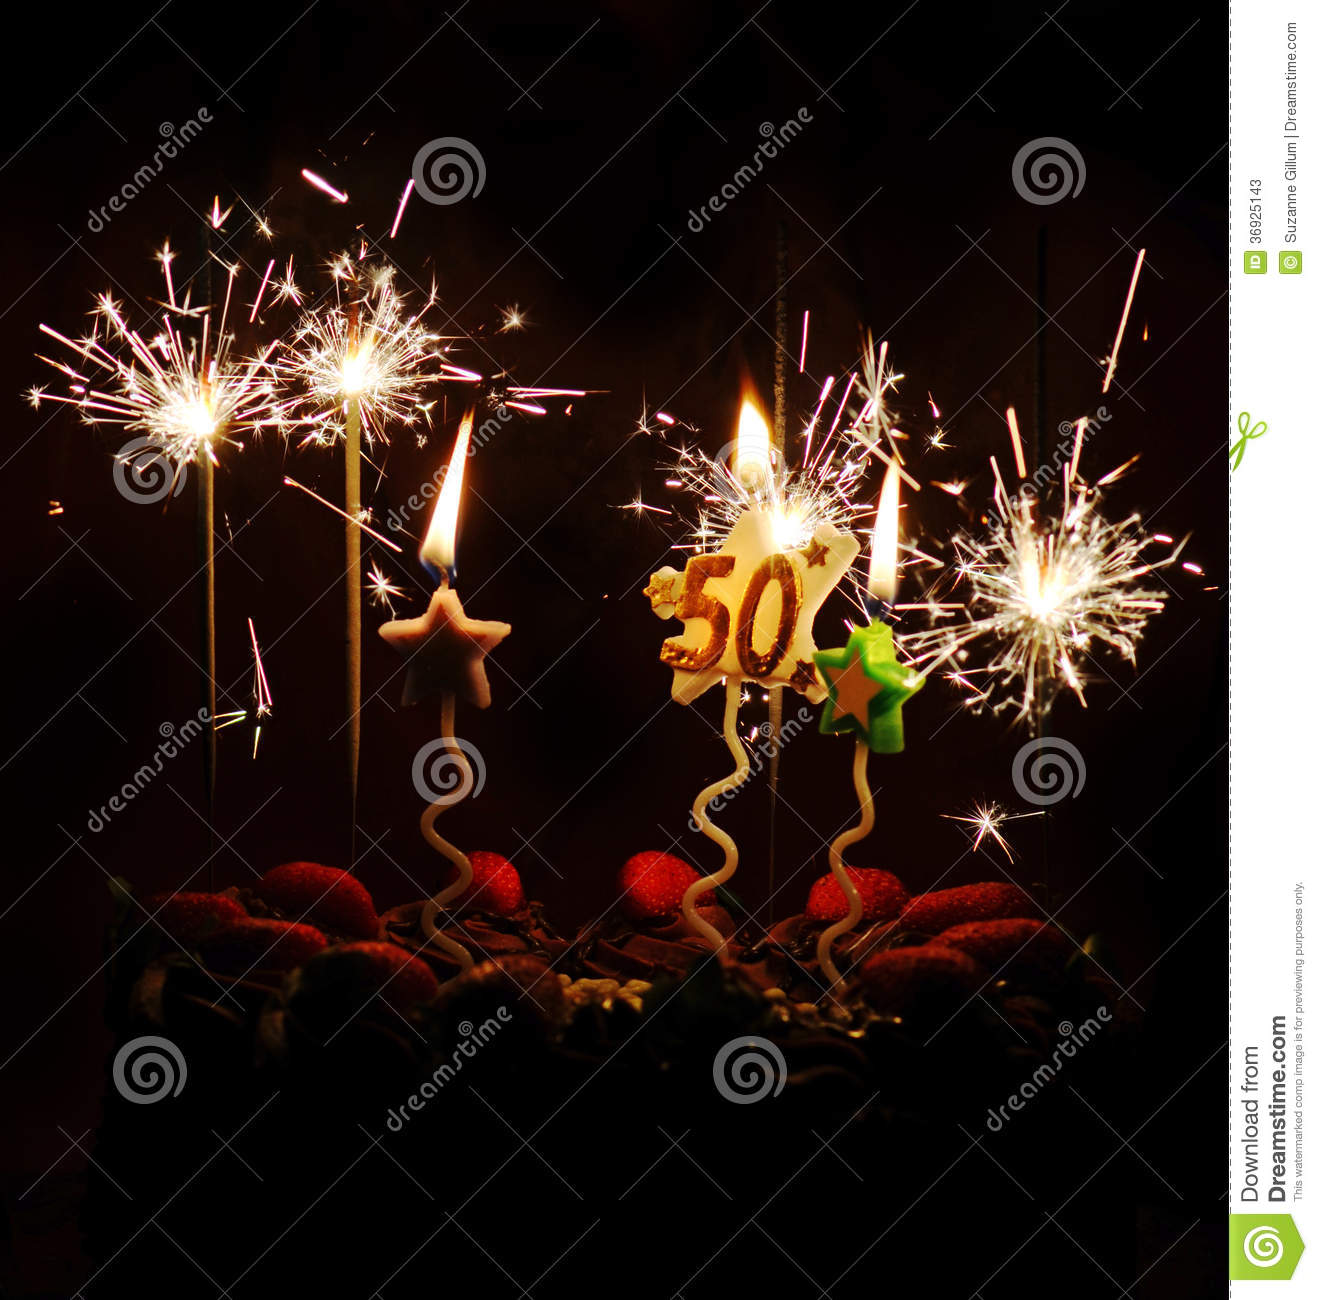 50th Birthday Celebration Cake Sparklers Candles Stock Image